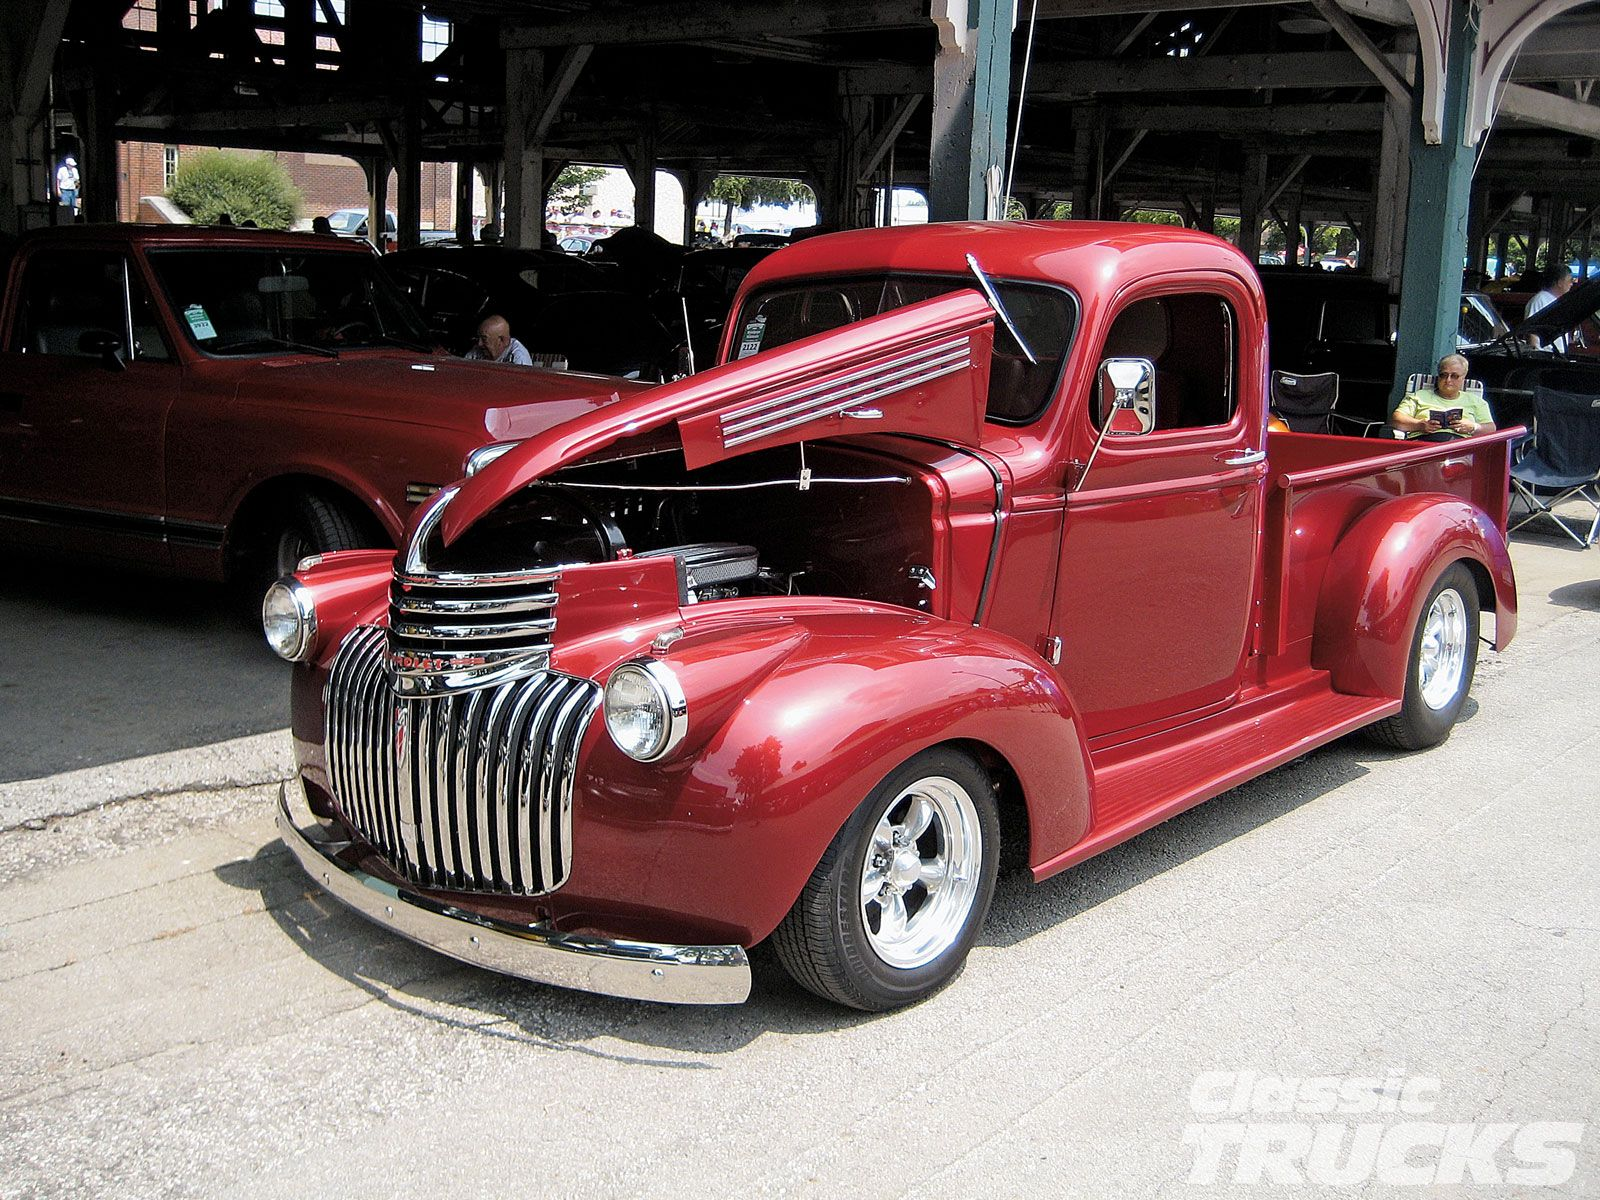 1941 chevrolet truck image 2009 ppg nationals 1941 chevy pickup truck